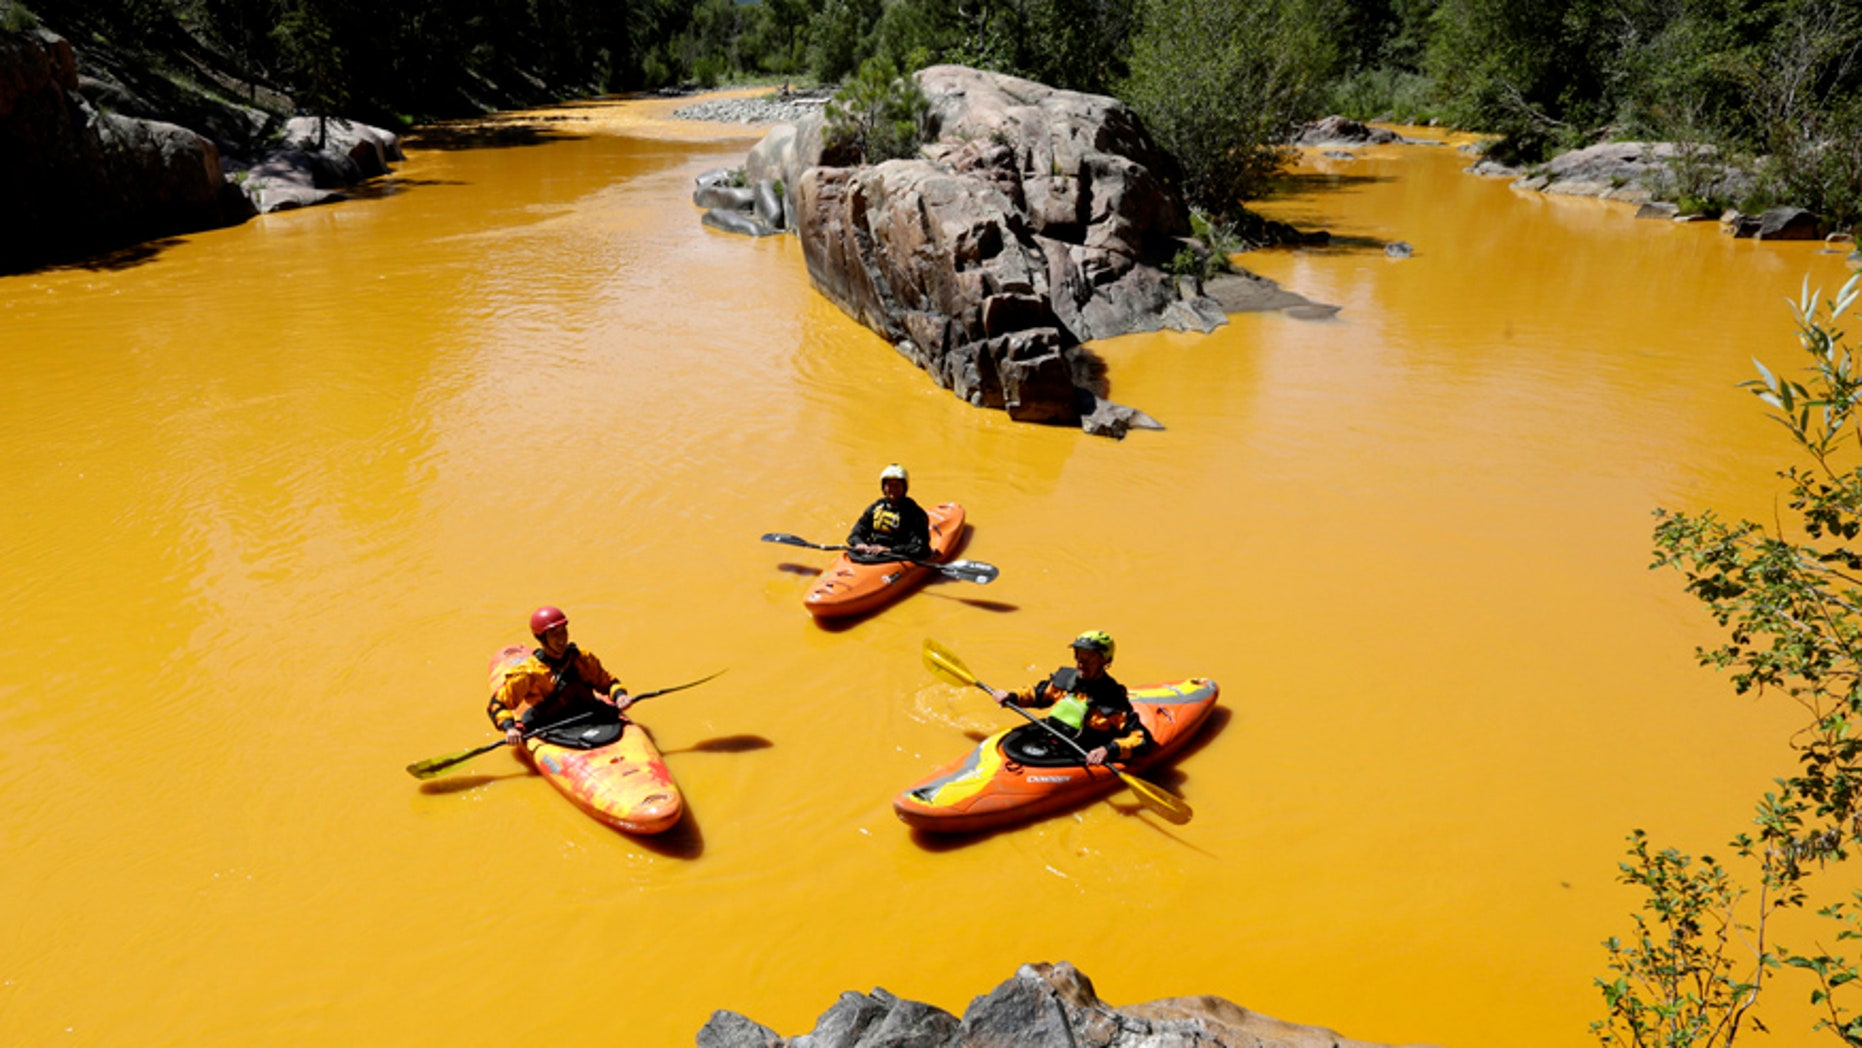 Aug. 6, 2015: People kayak in the Animas River near Durango, Colo., in water colored from a mine waste spill.